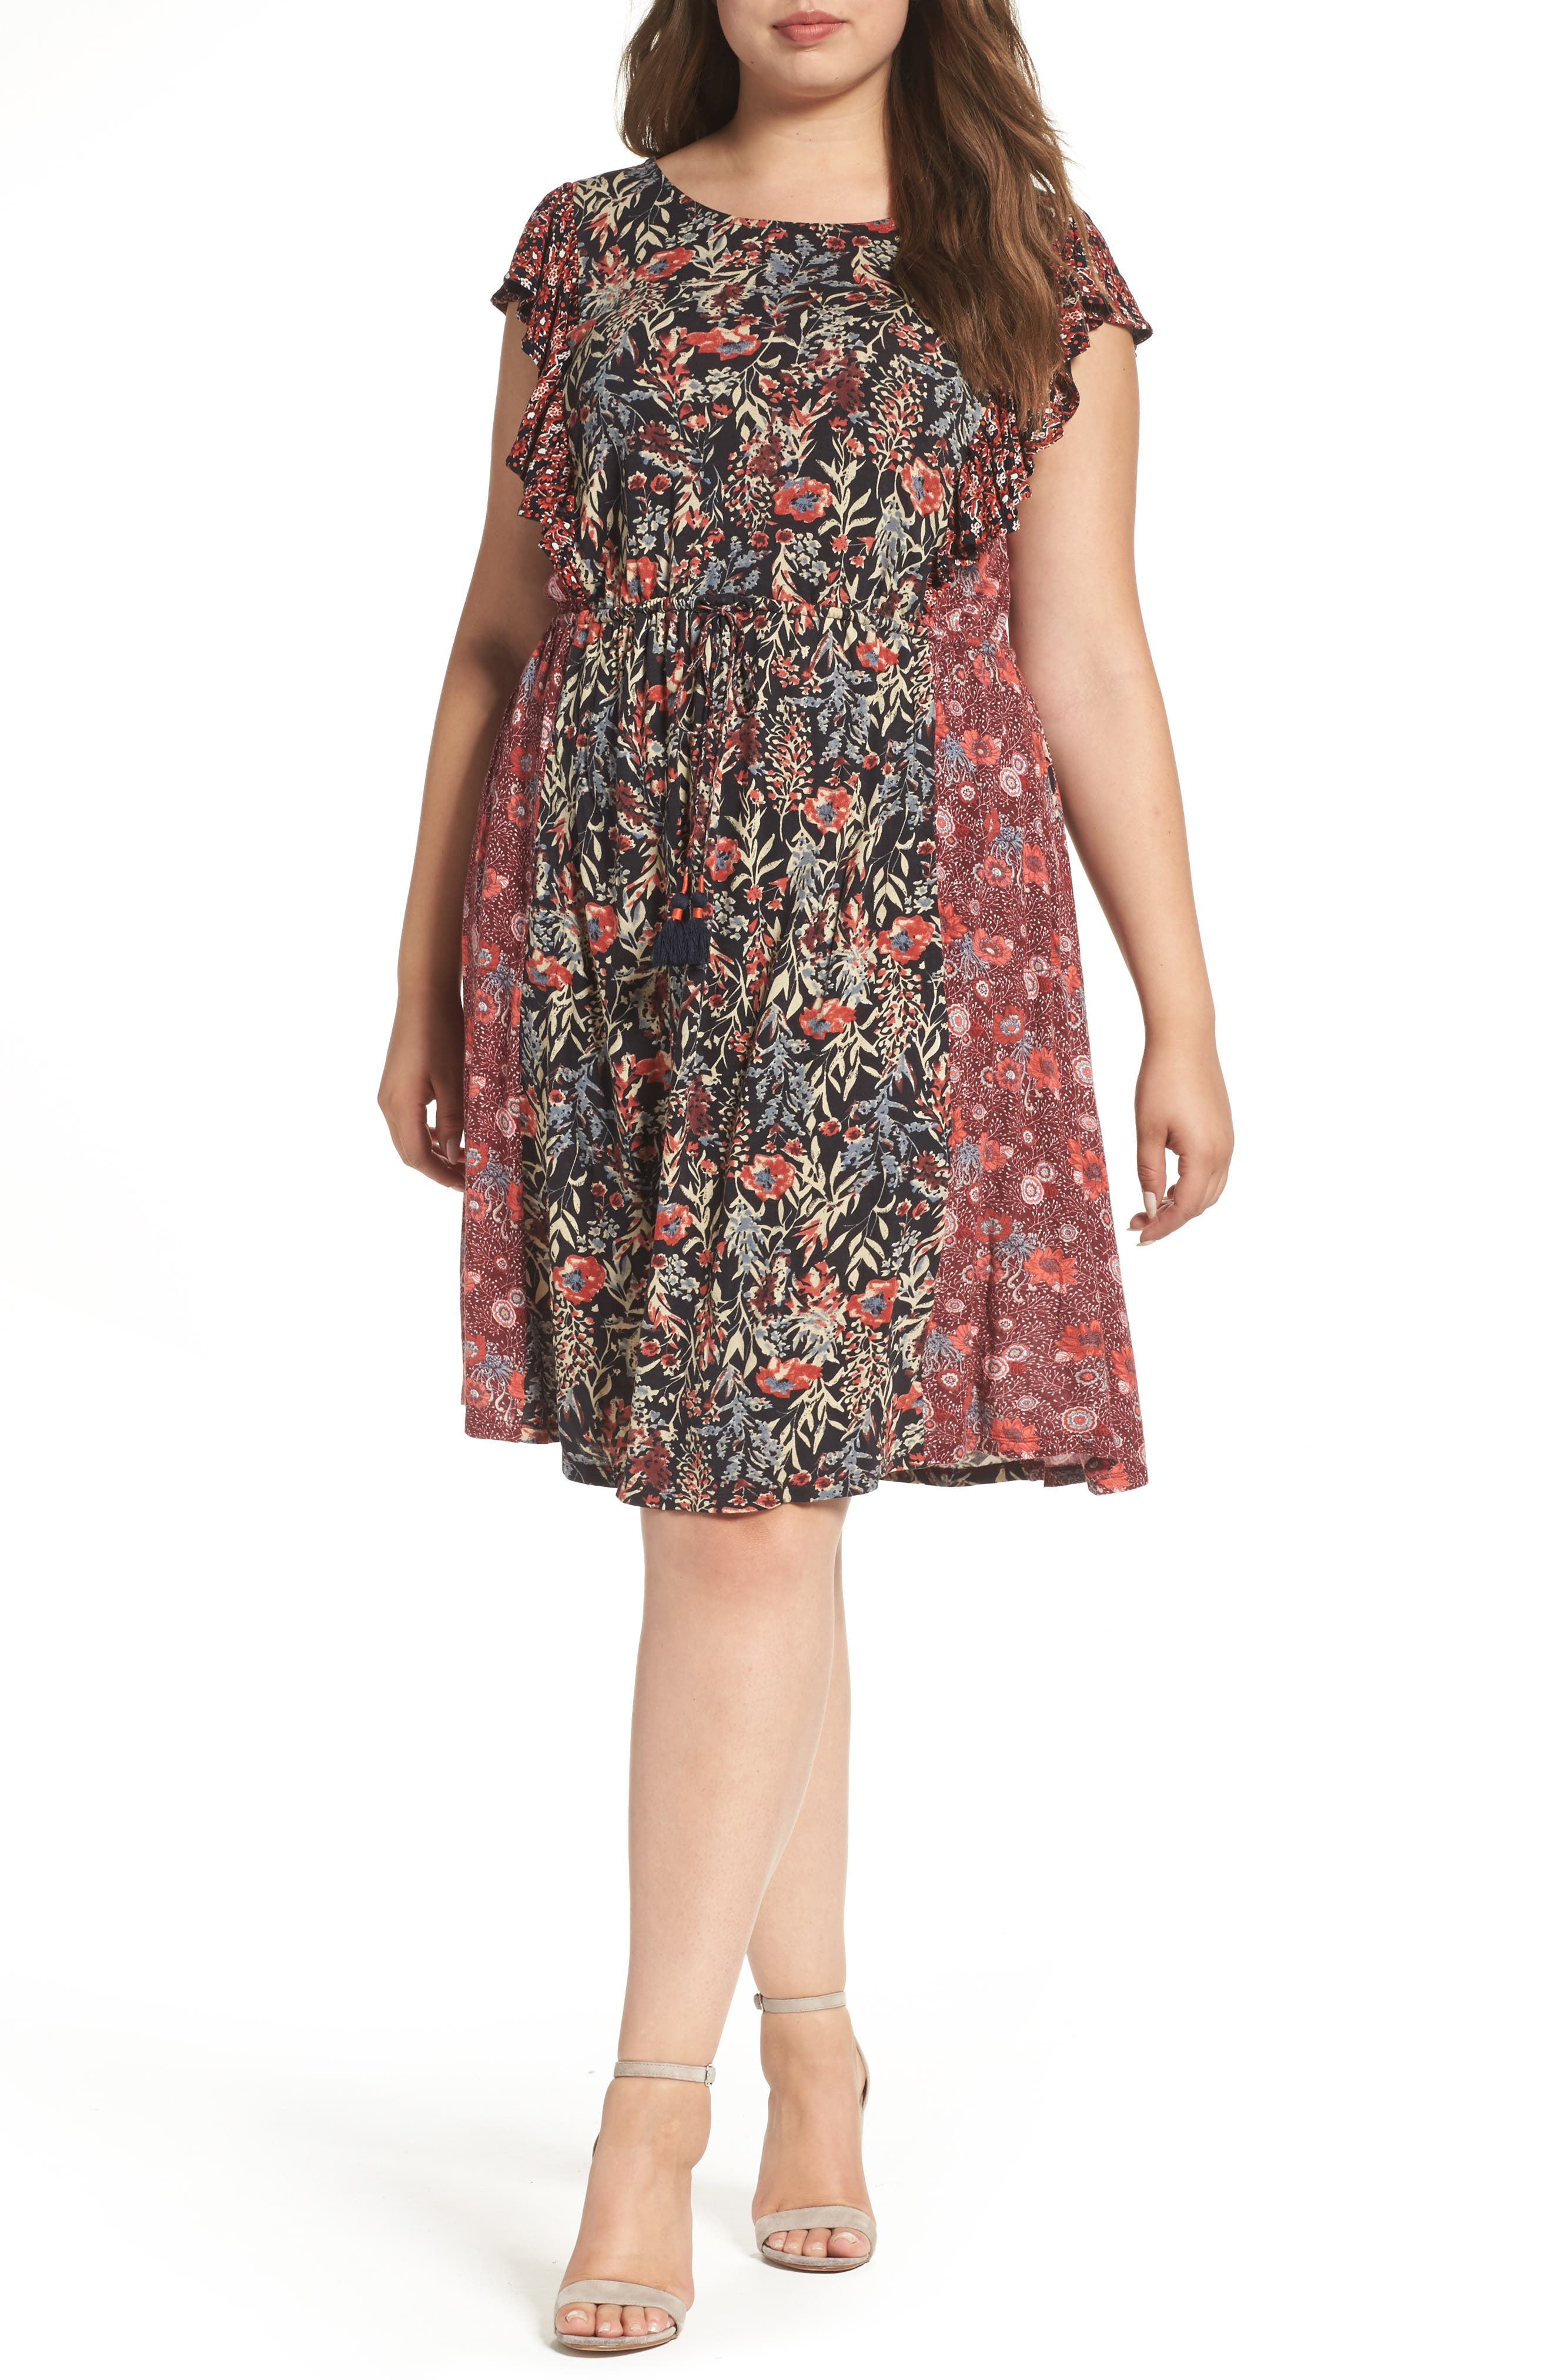 Main Image - Lucky Brand Mixed Floral Print Dress (Plus Size)